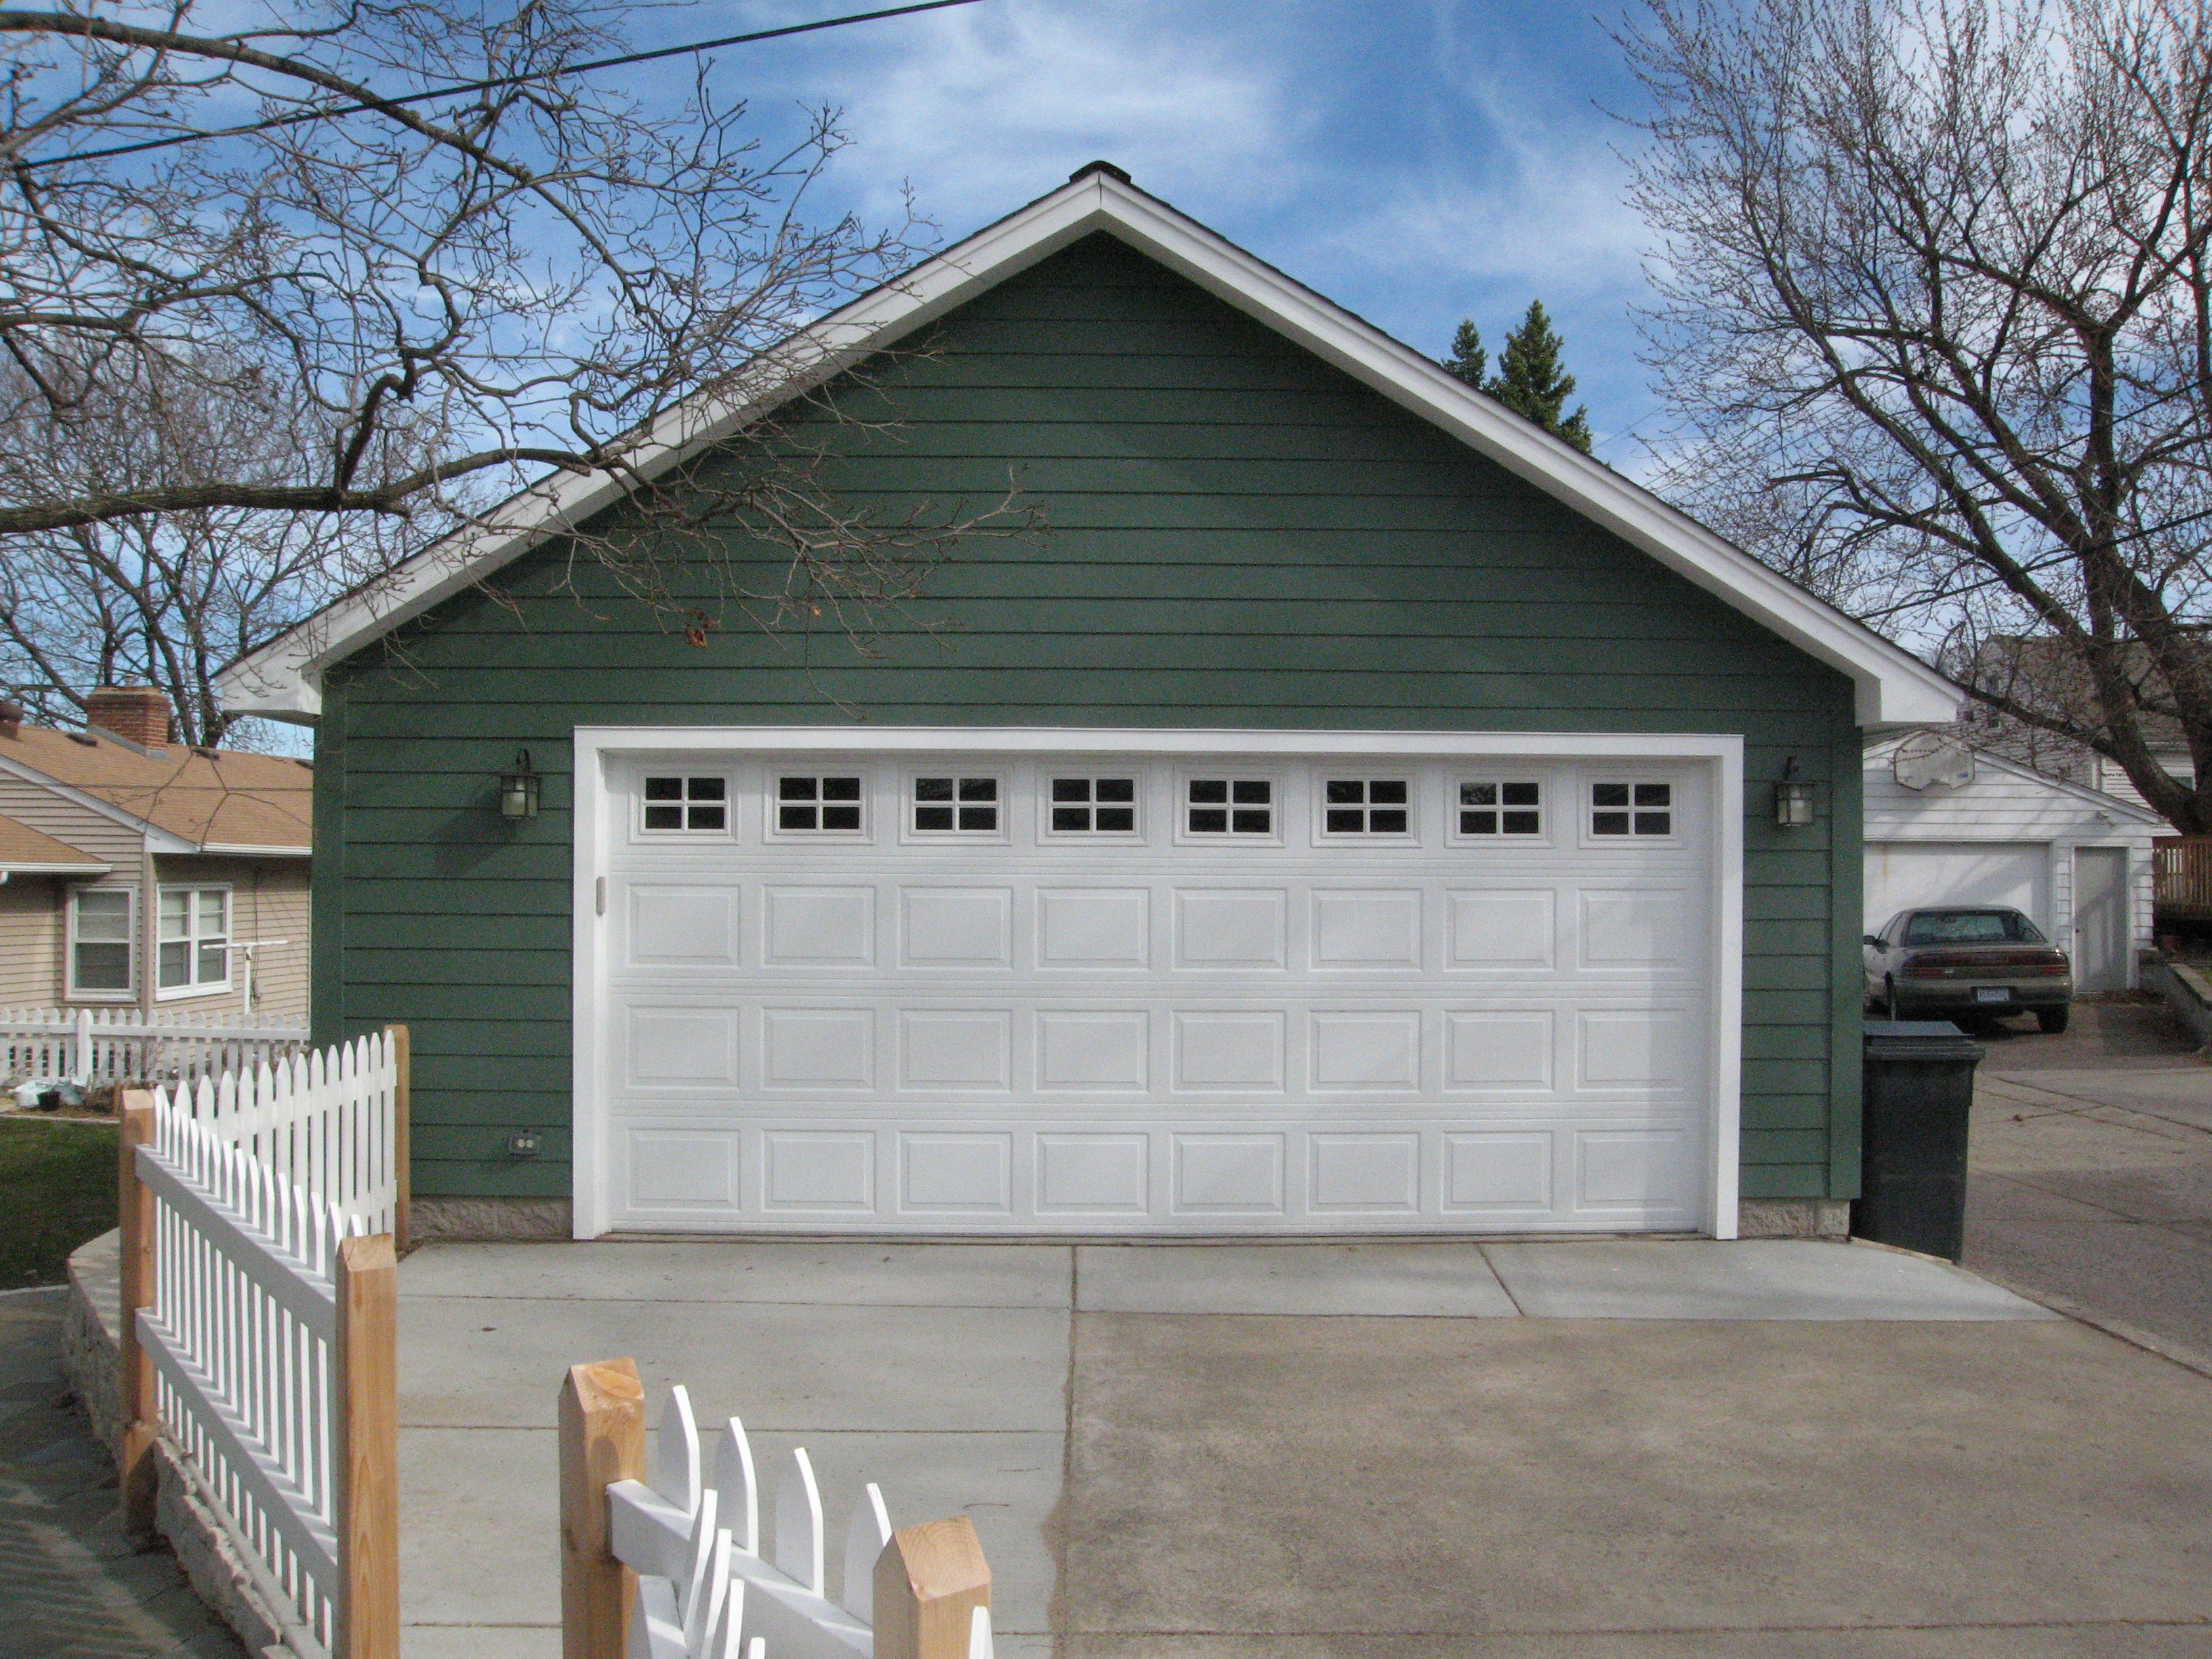 Free storage truss garage plans for Detached garage blueprints